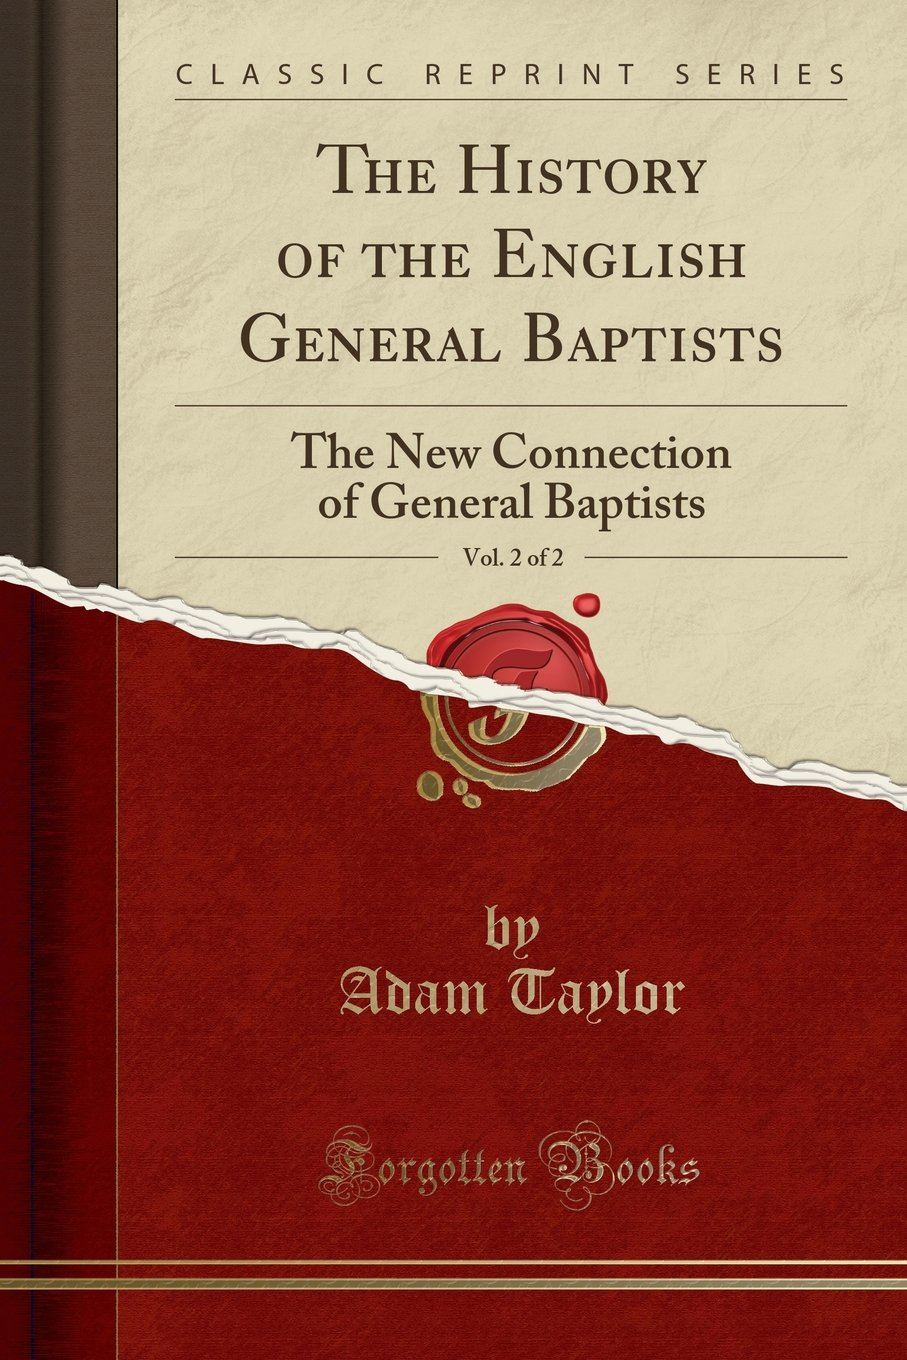 The History of the English General Baptists, Vol. 2 of 2: The New Connection of General Baptists (Classic Reprint) pdf